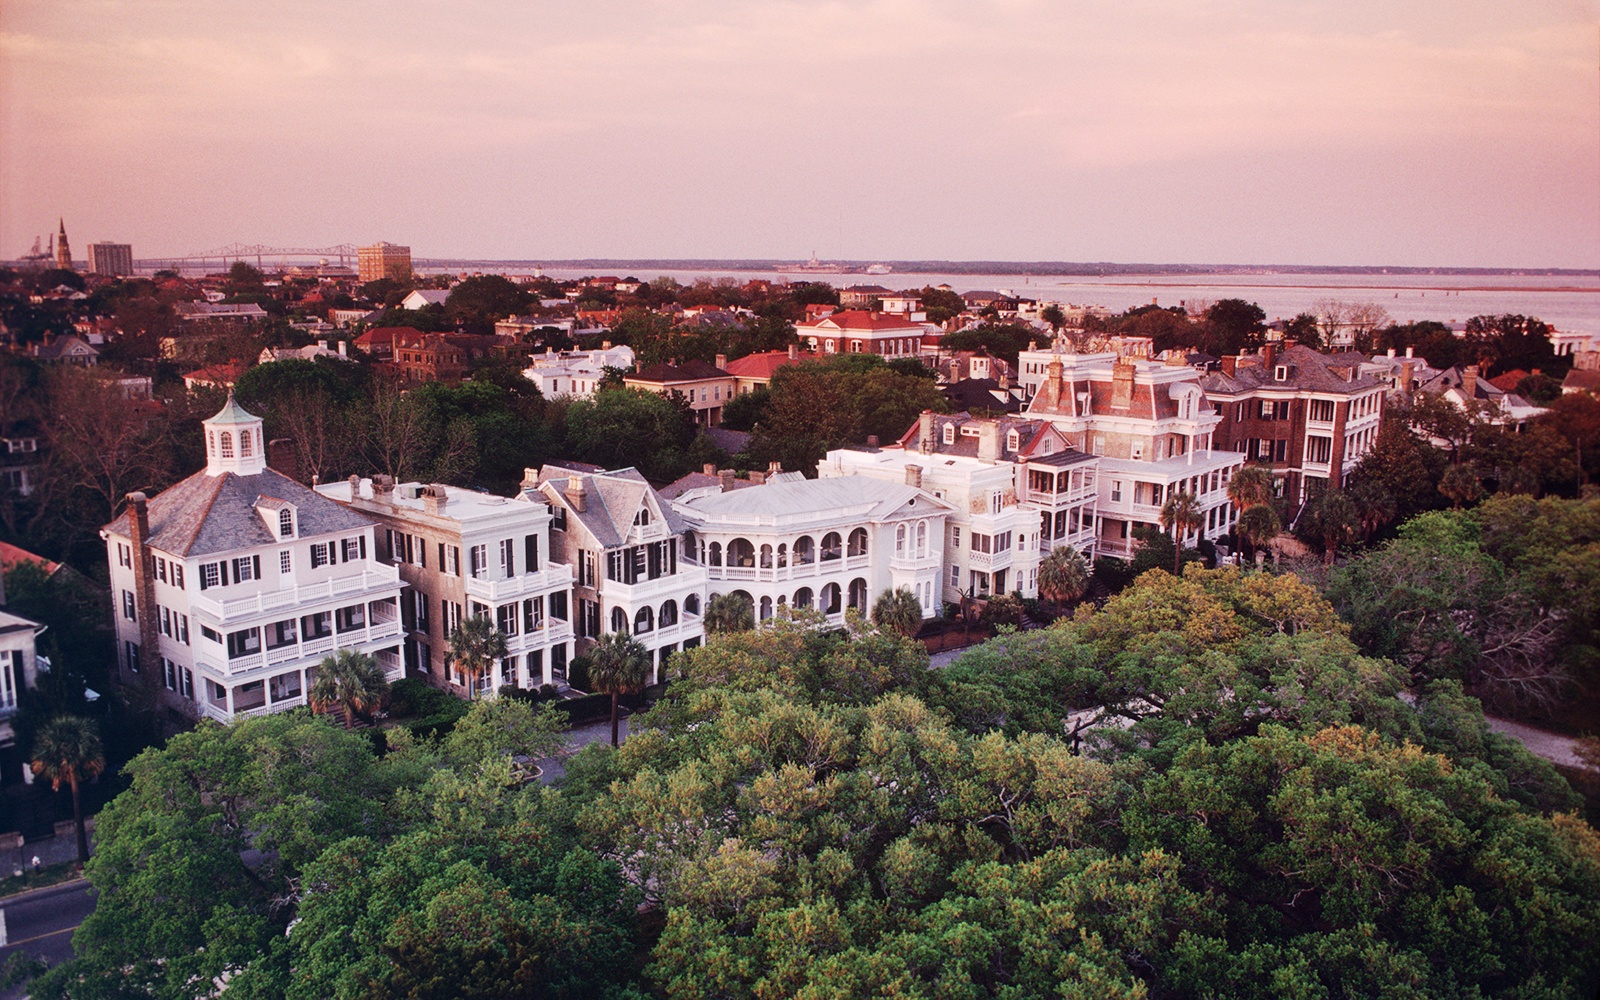 ATD8E8 Aerial view of rows of victorian houses found along the Battery in historic Charleston South Carolina at sunset